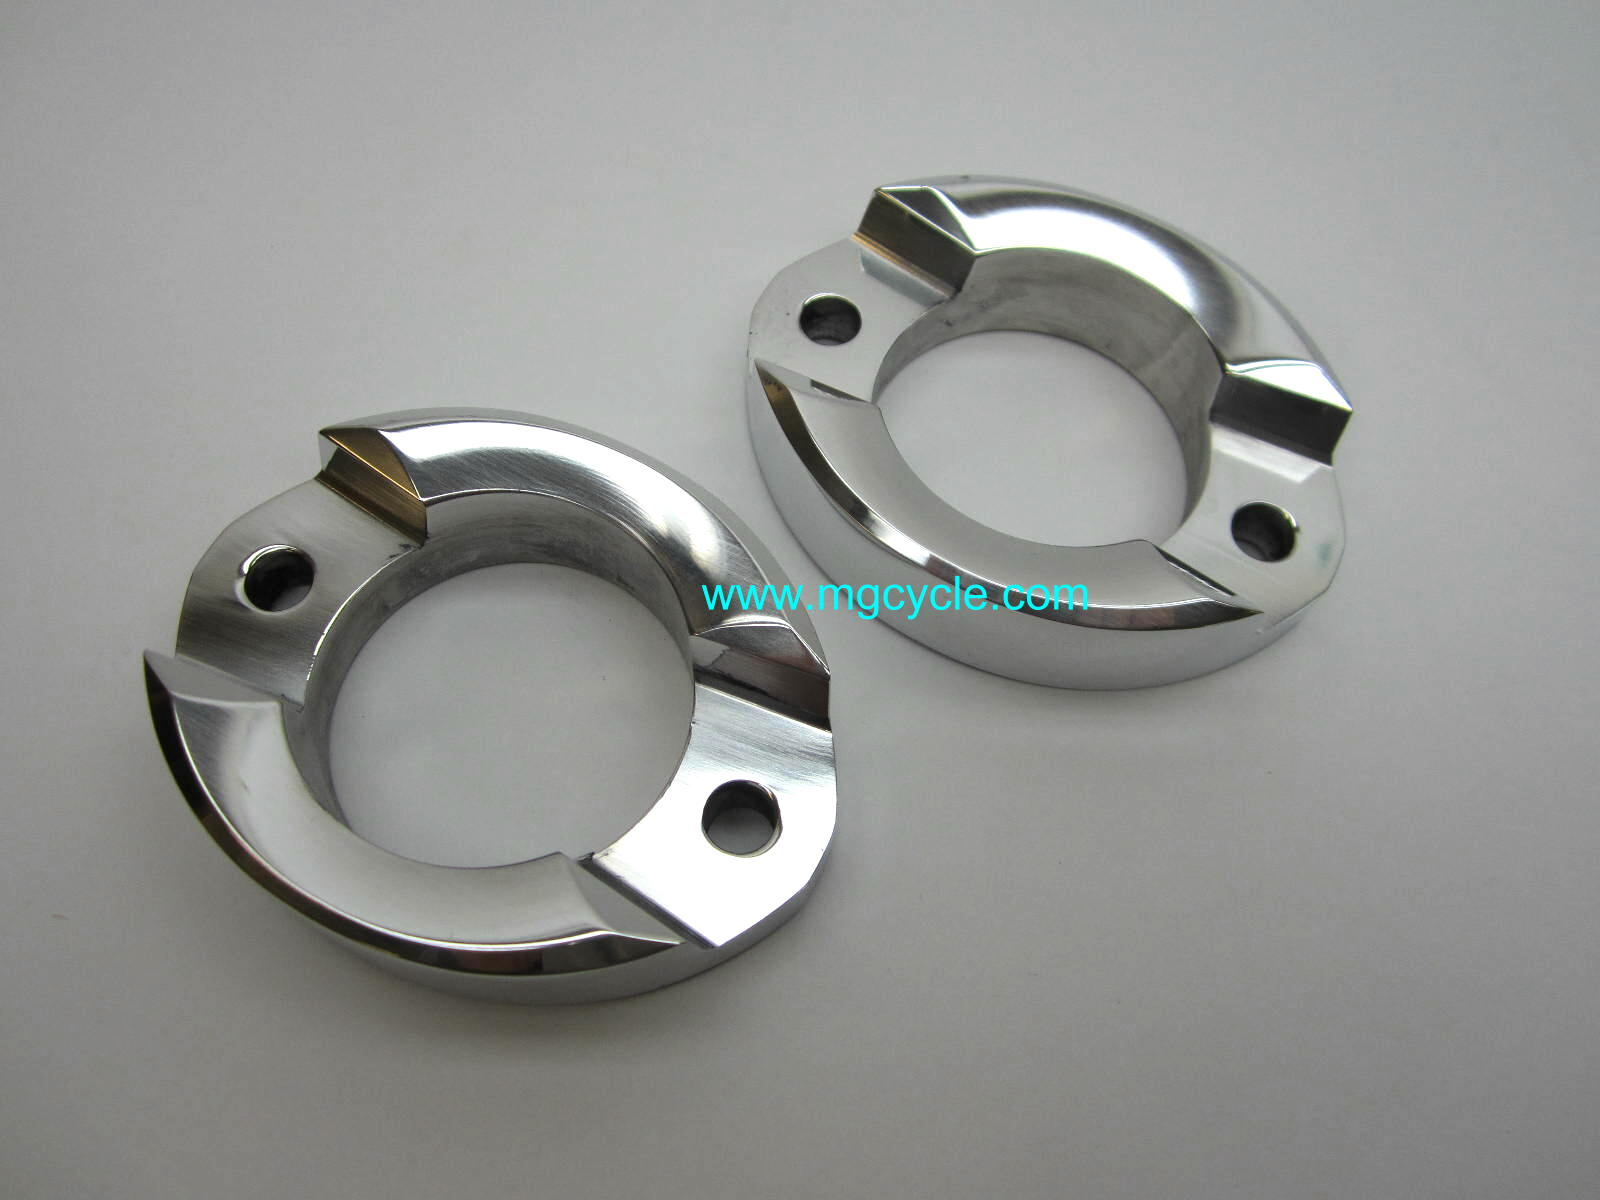 CNC aluminum exhaust flange, big ~48mm hole for 850 LeMans 1/2